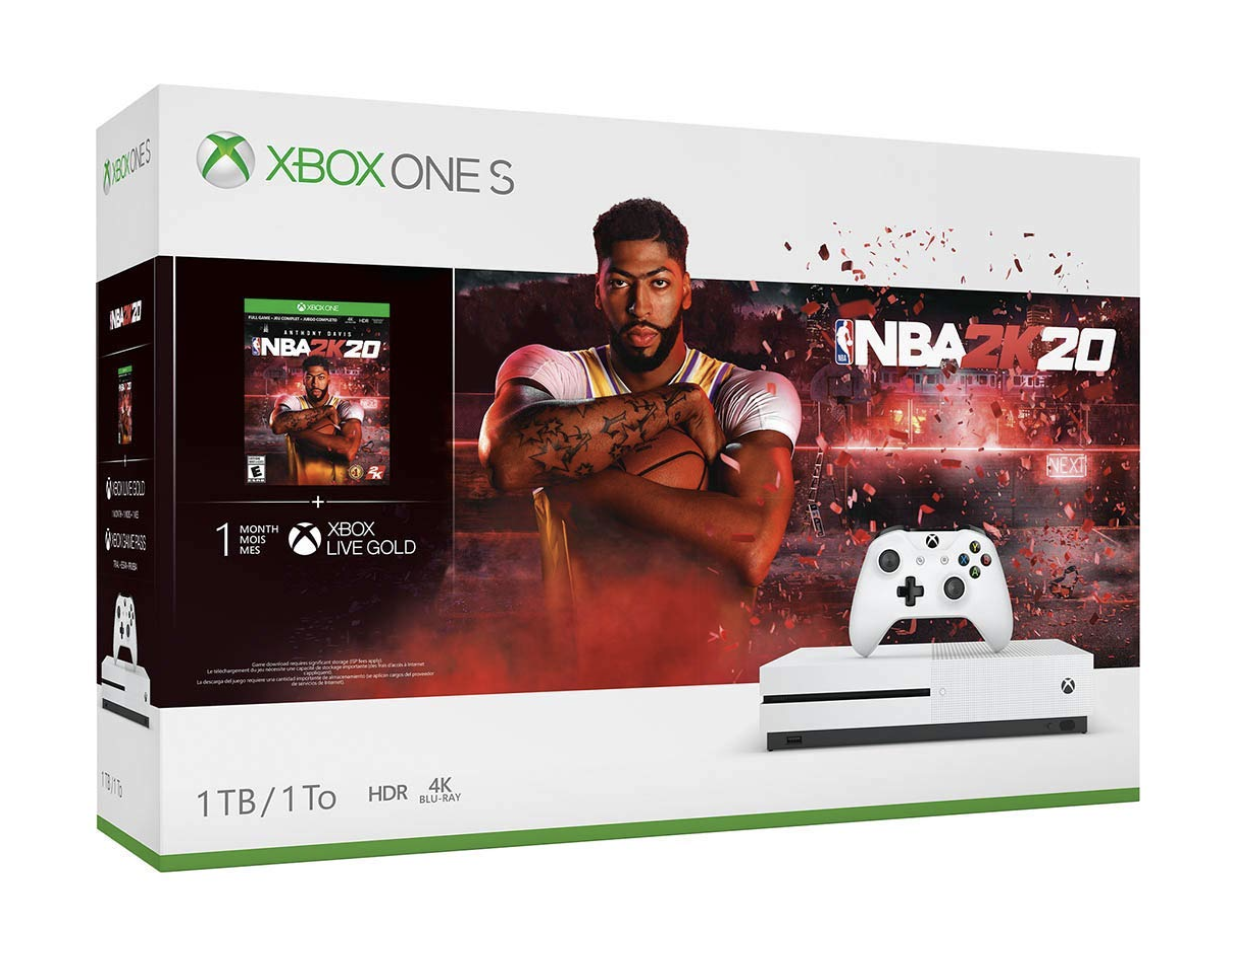 Xbox One S ITB Console - NBA 2K20 Bundle